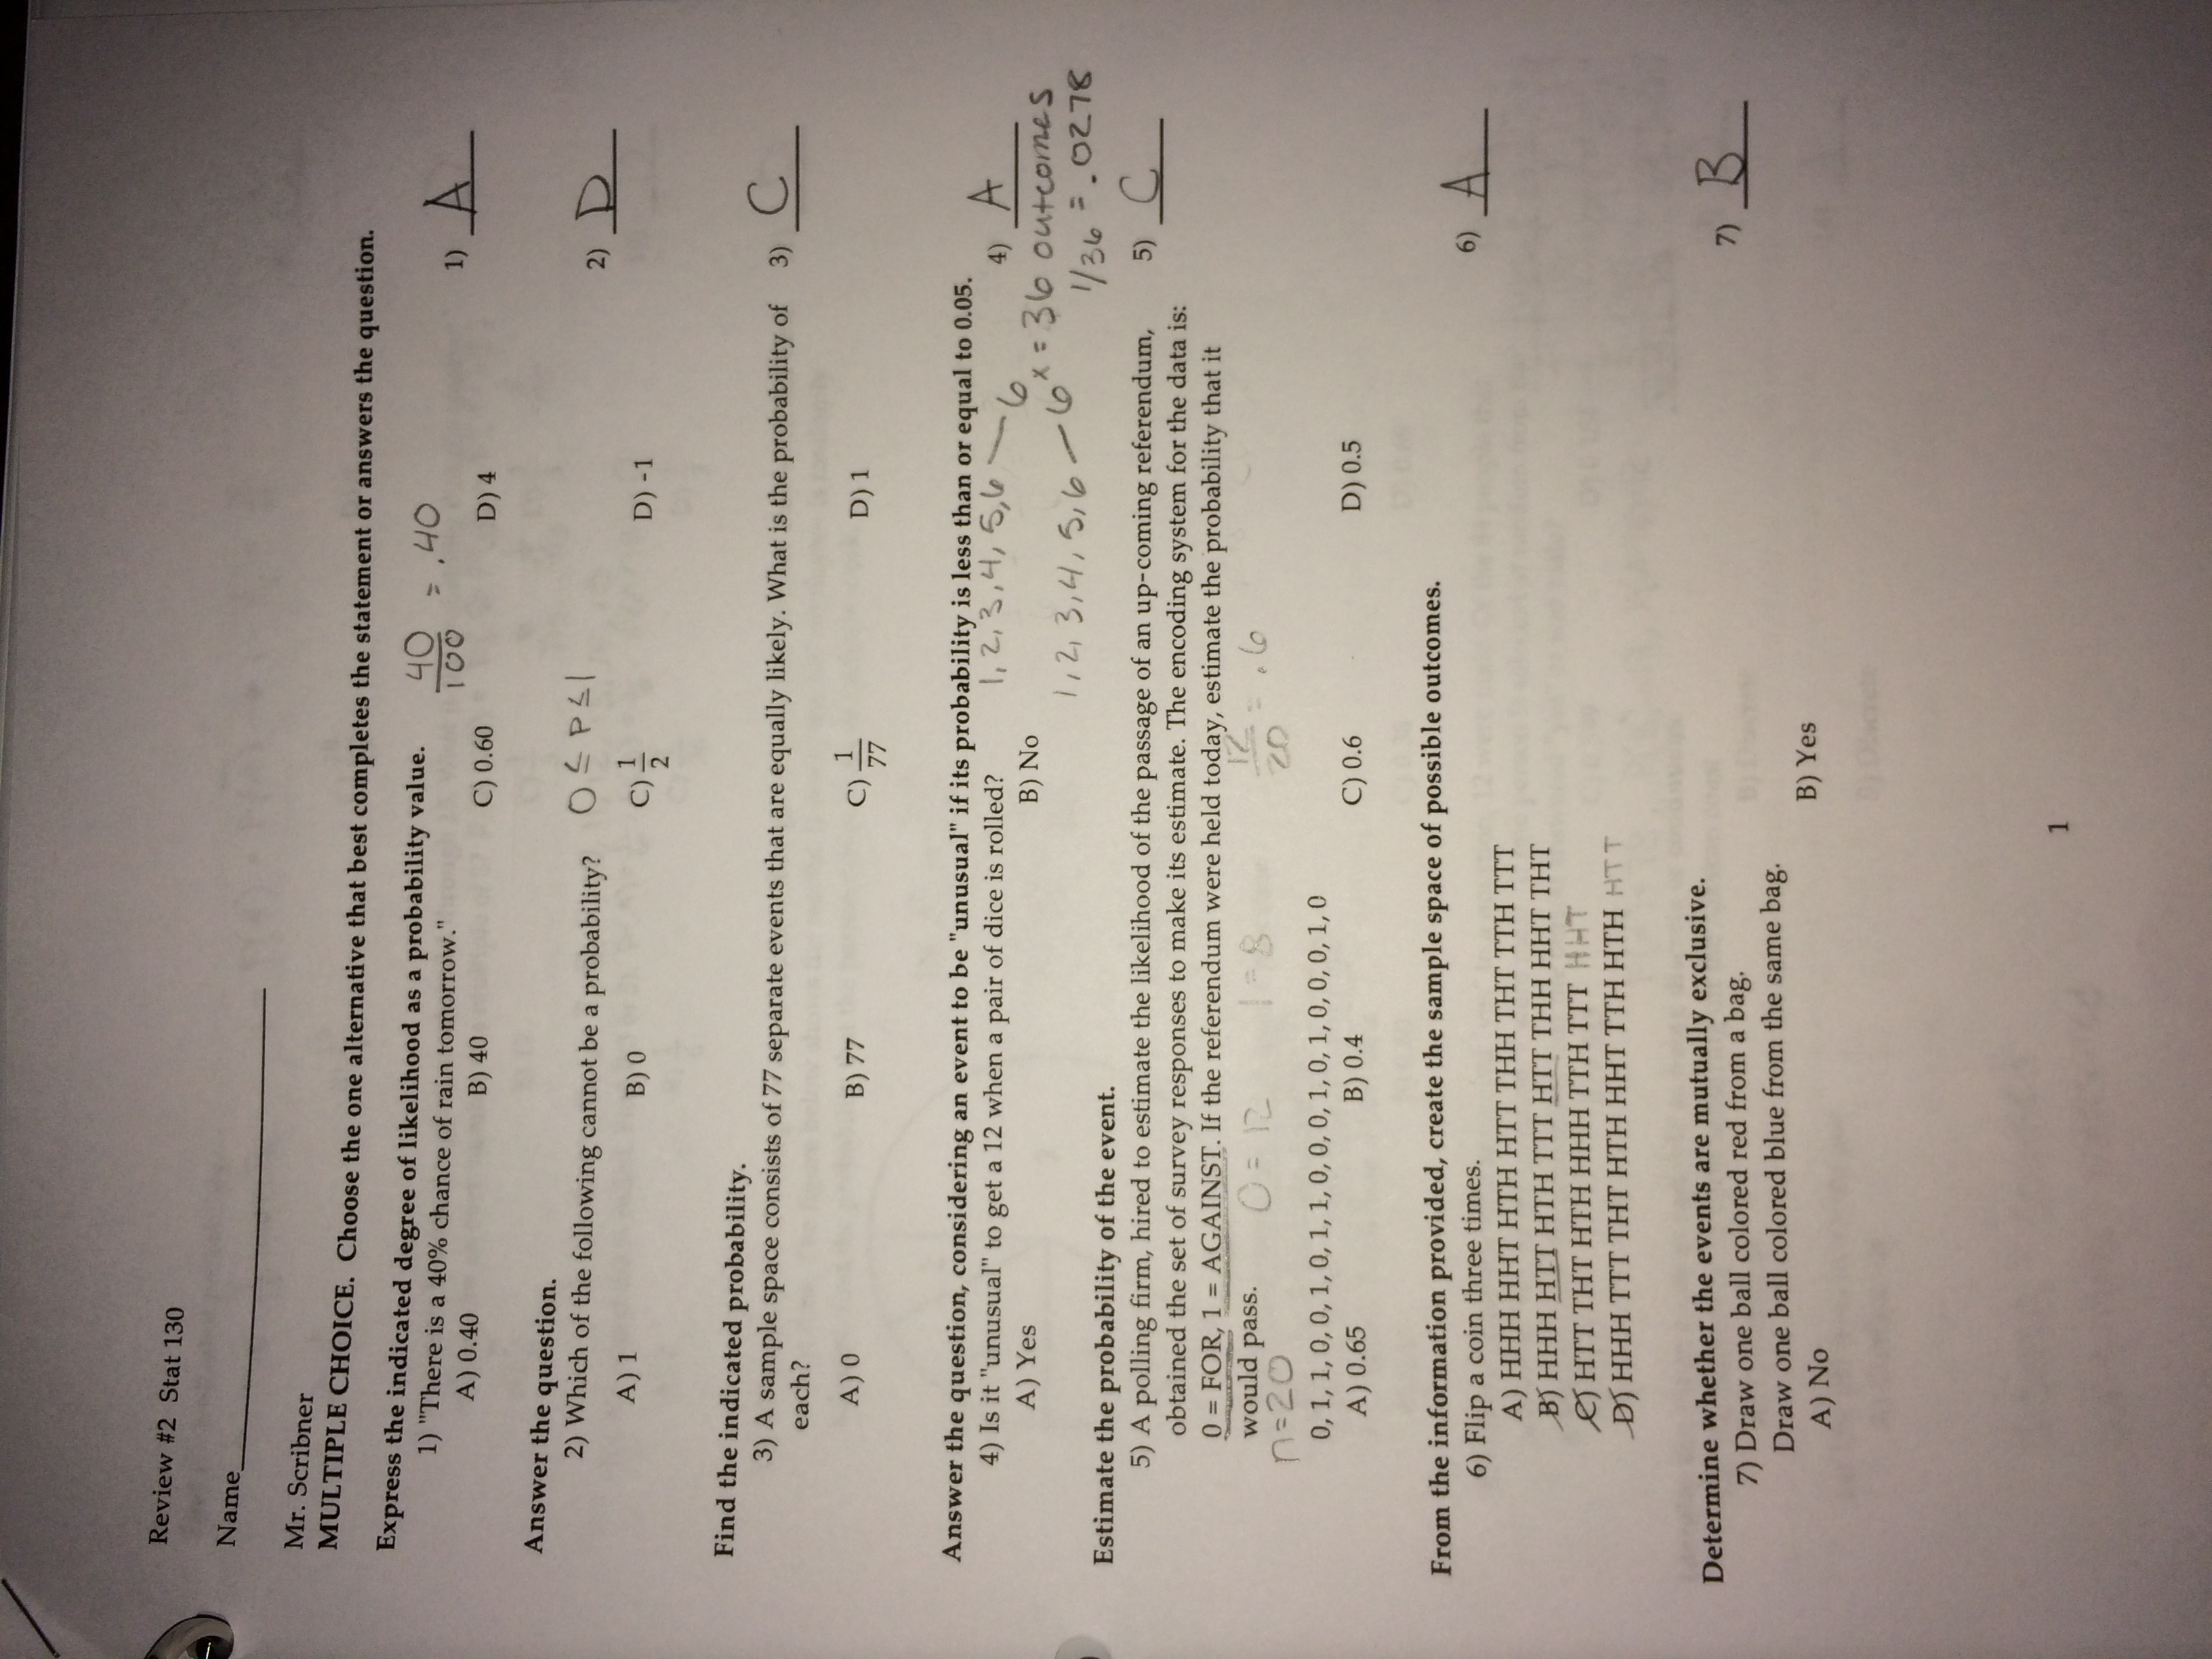 STAT 130 - Study Guide